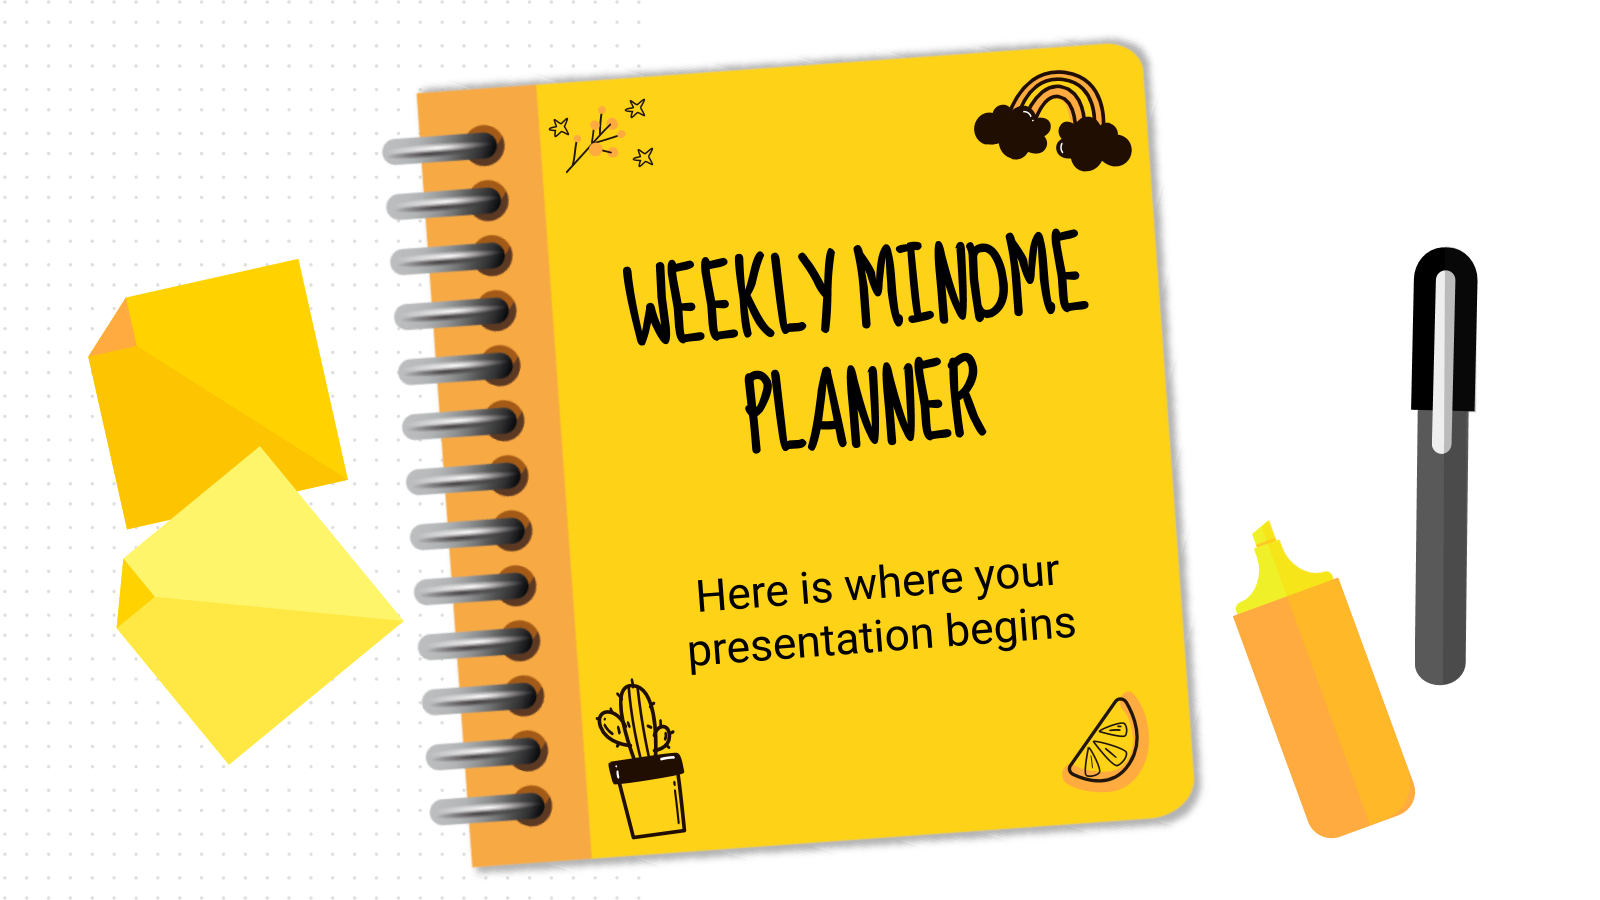 Weekly Mindme Planner presentation template